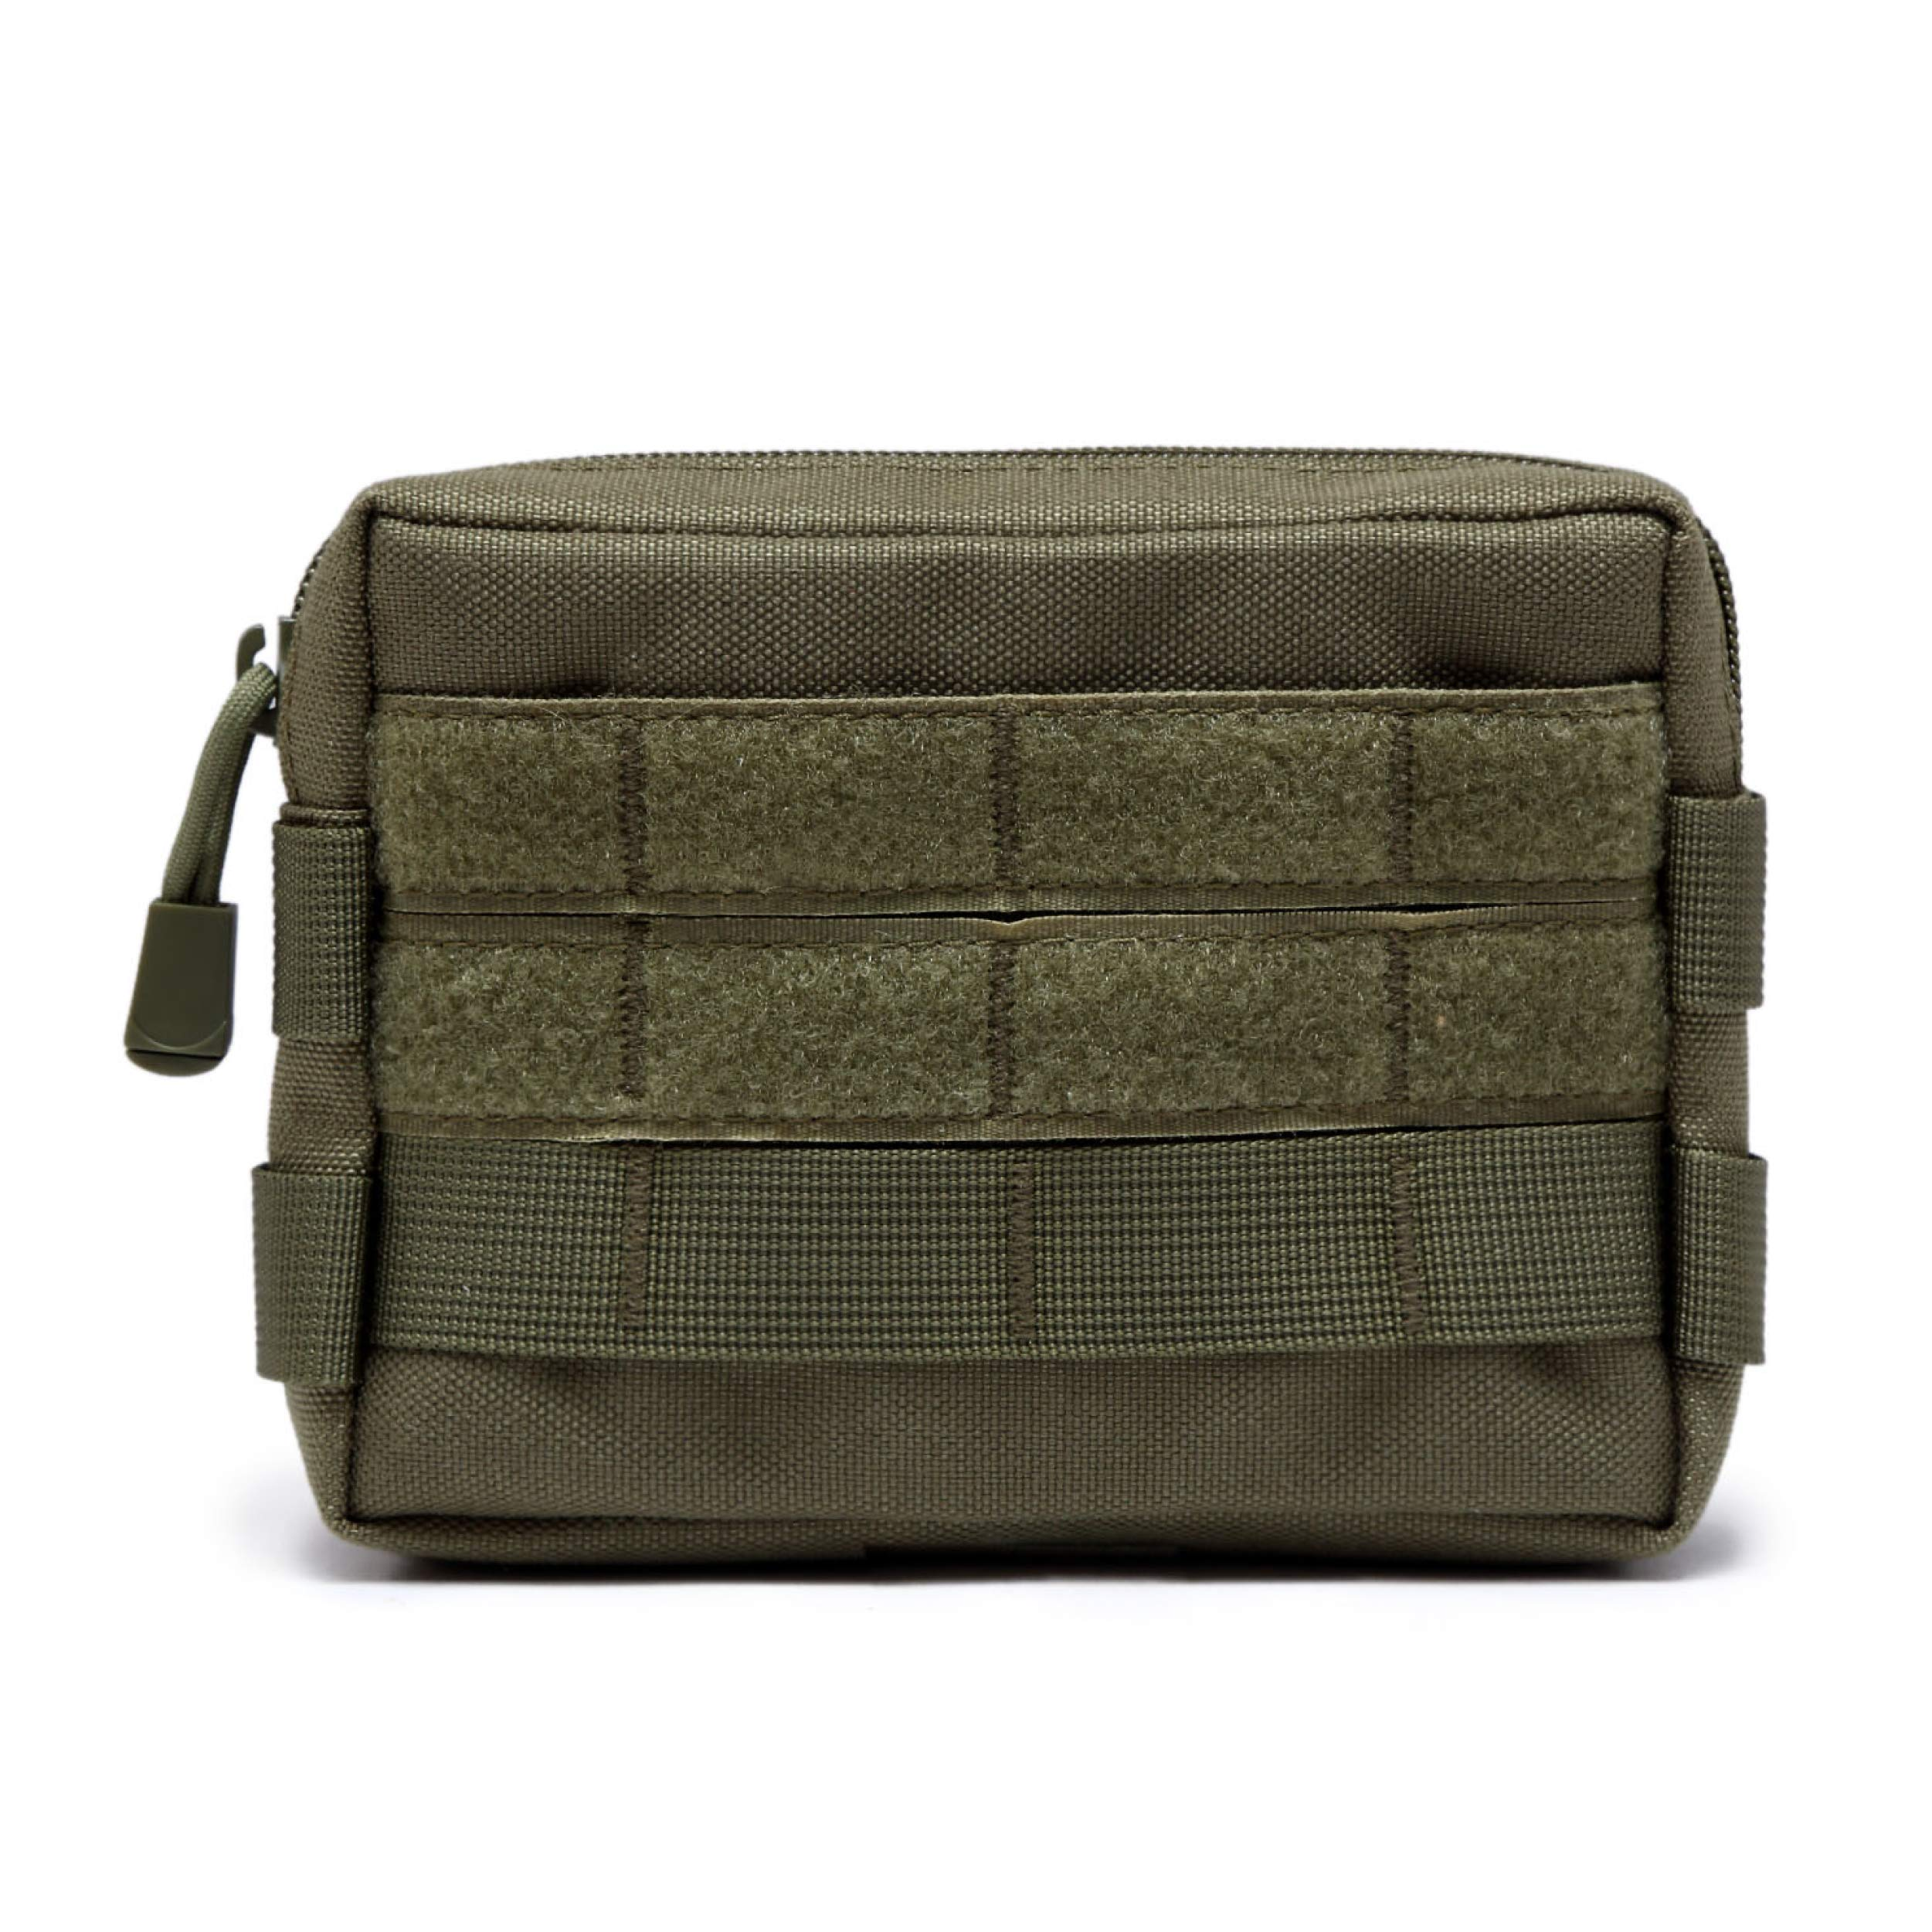 TRIWONDER Tactical MOLLE Horizontal Admin Pouch Utility EDC Tool Bag Military Carry Accessory Belt Hanging Waist Bag